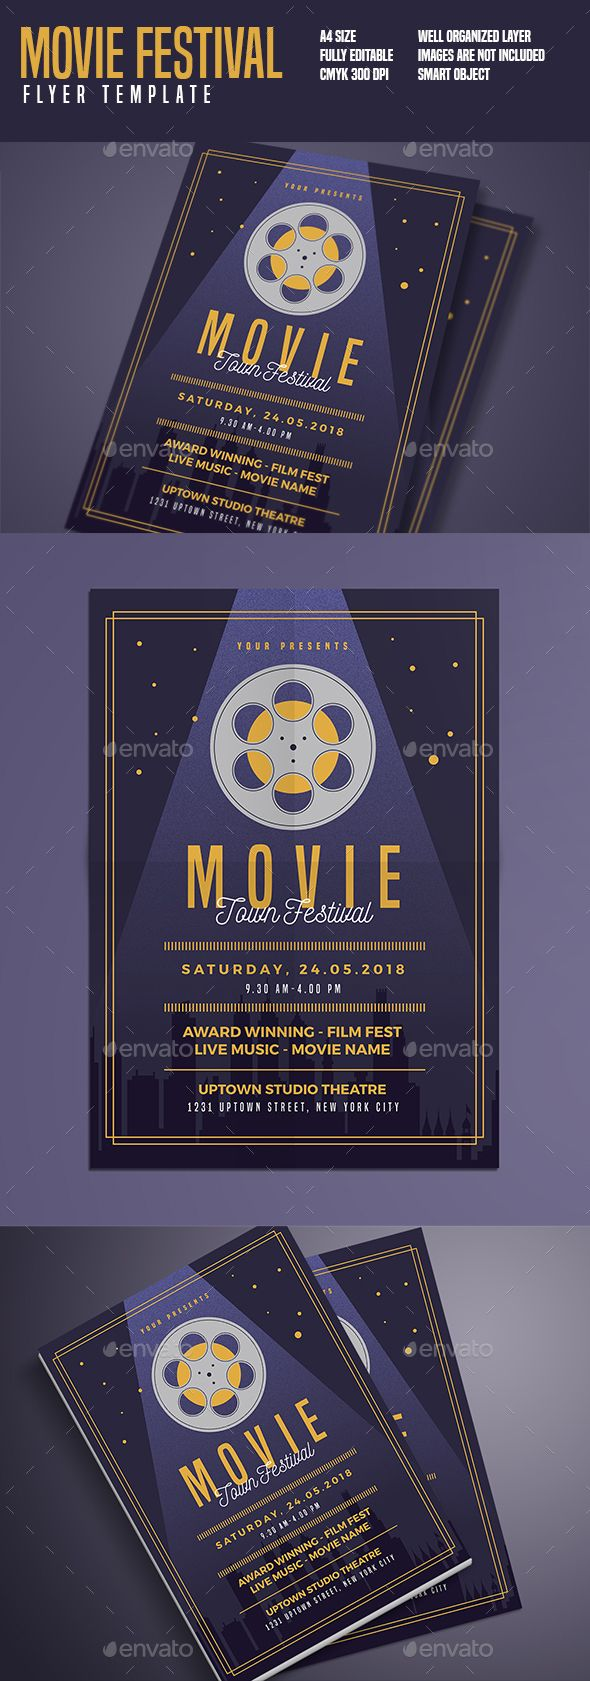 movie festival flyer movie flyer template and typography